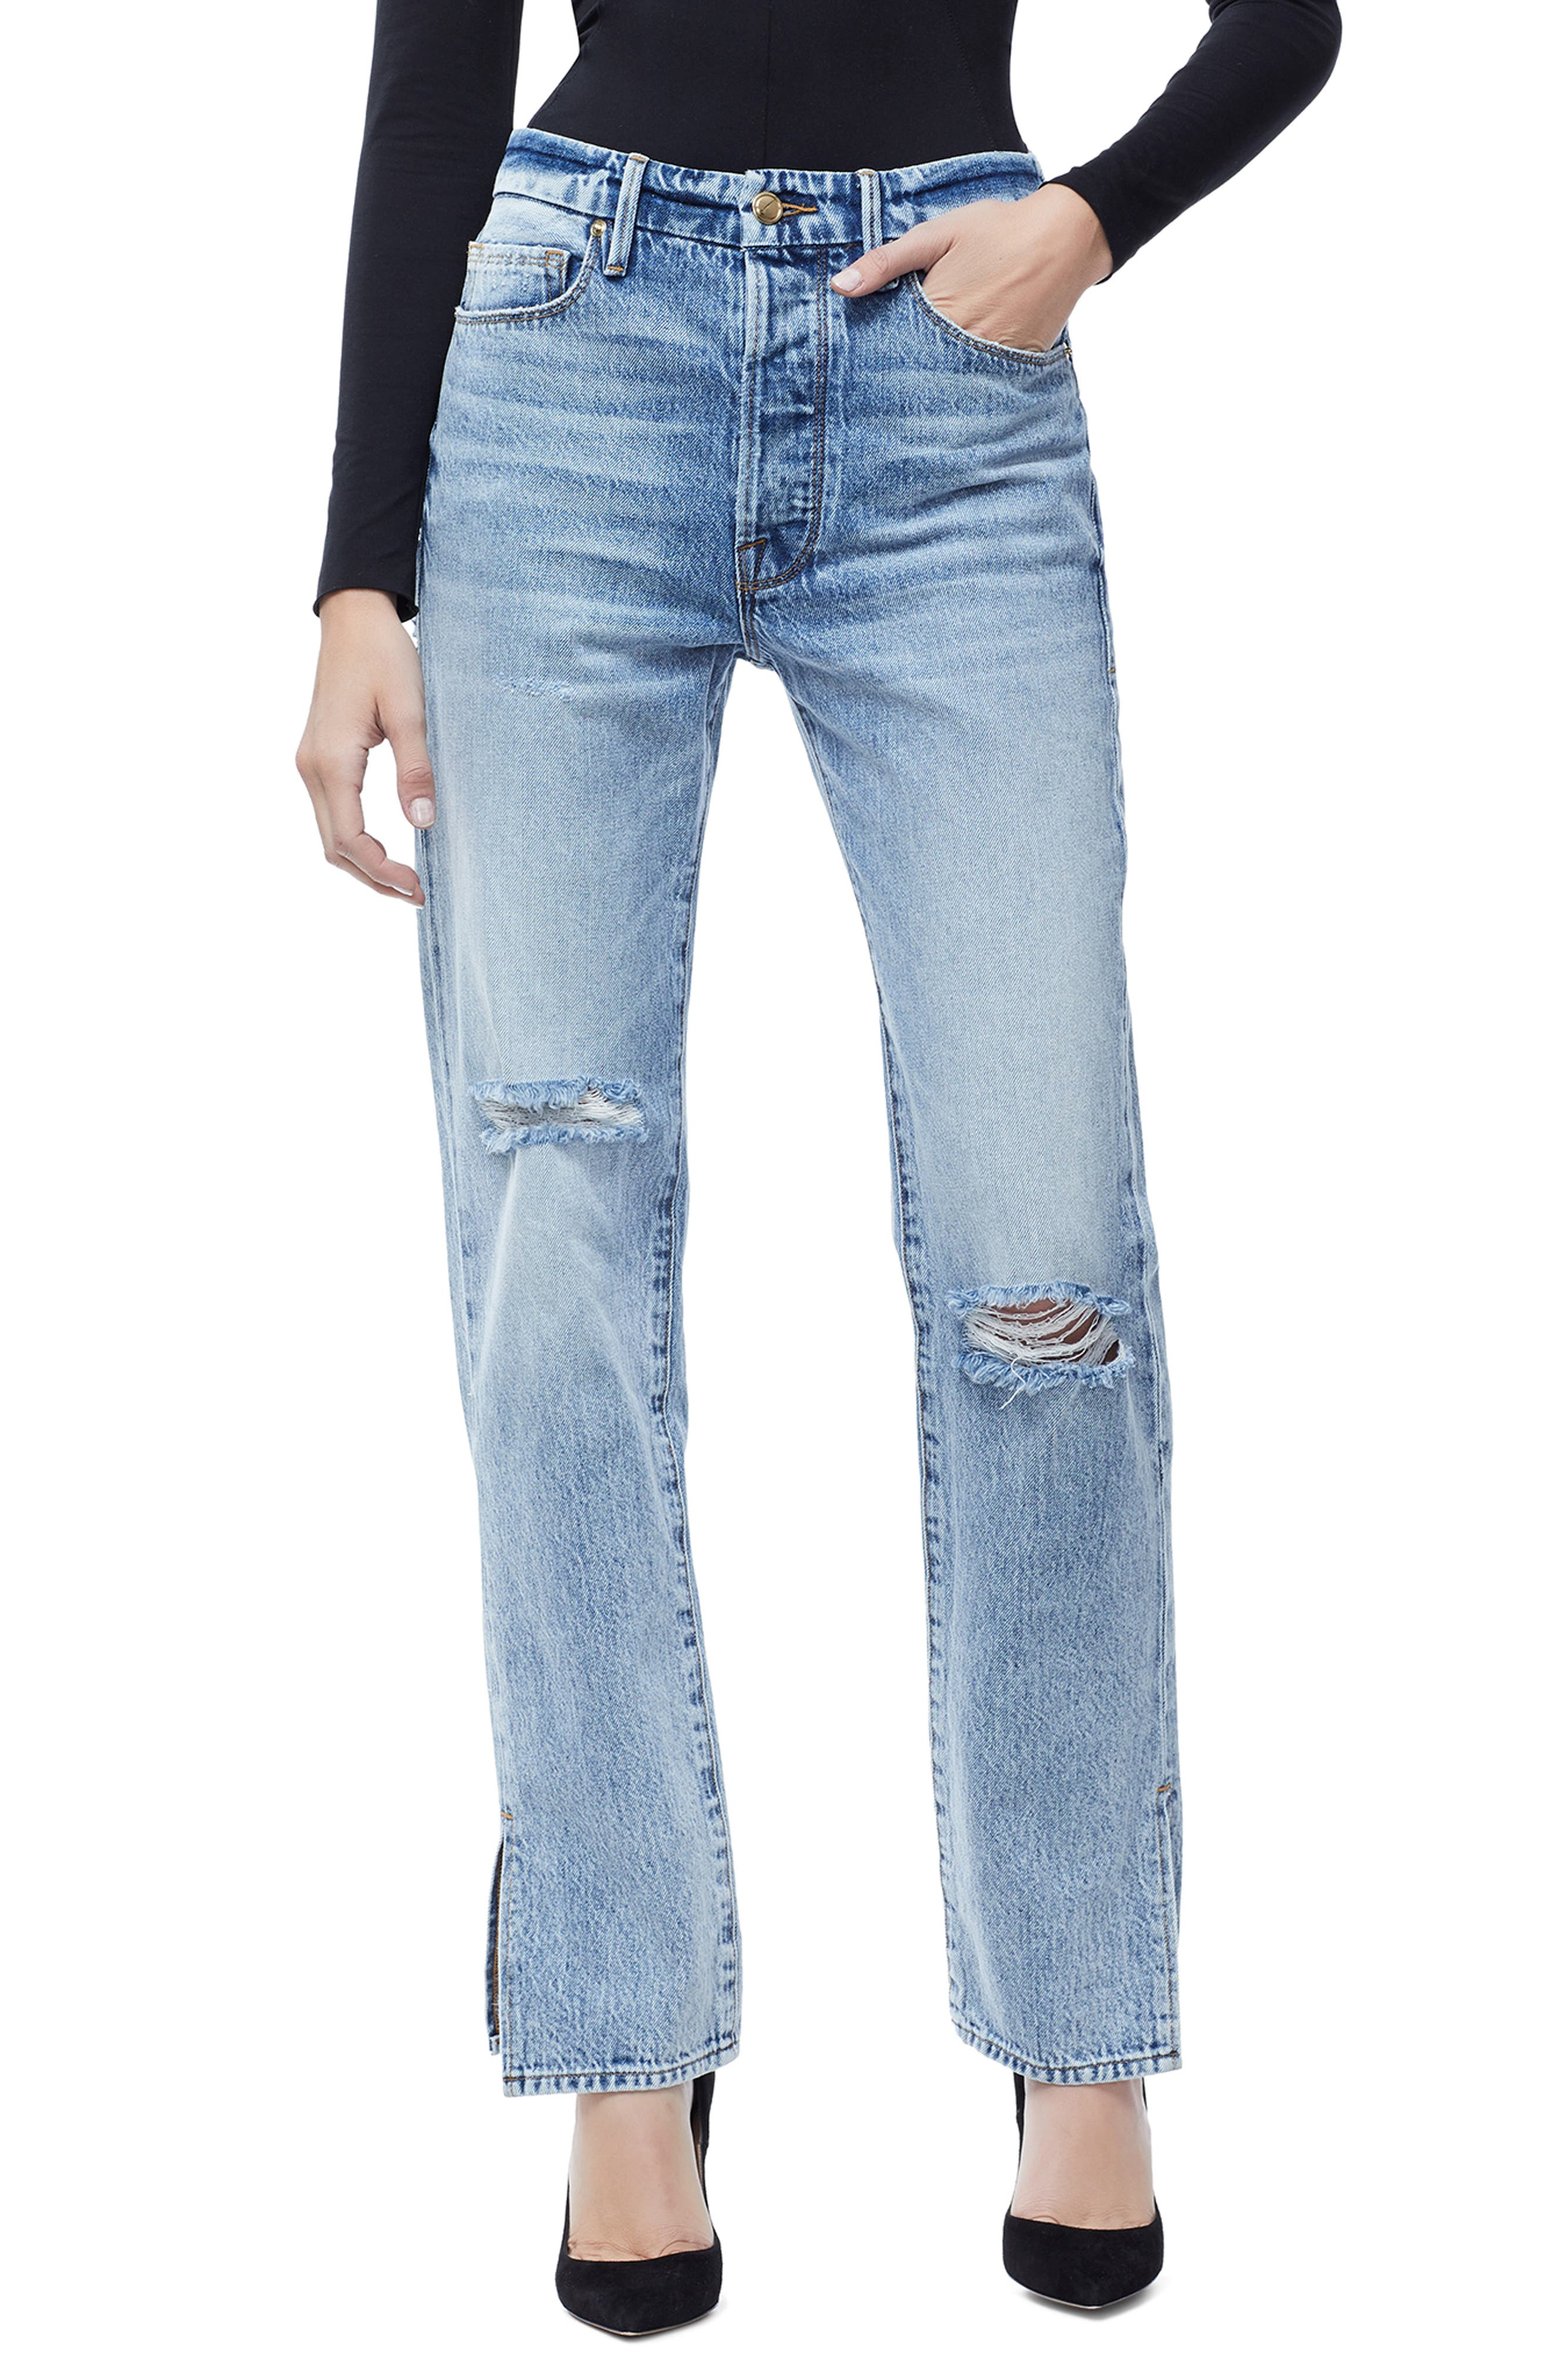 GOOD AMERICAN, Good Boy High Rise Ripped Boyfriend Jeans, Main thumbnail 1, color, BLUE 177